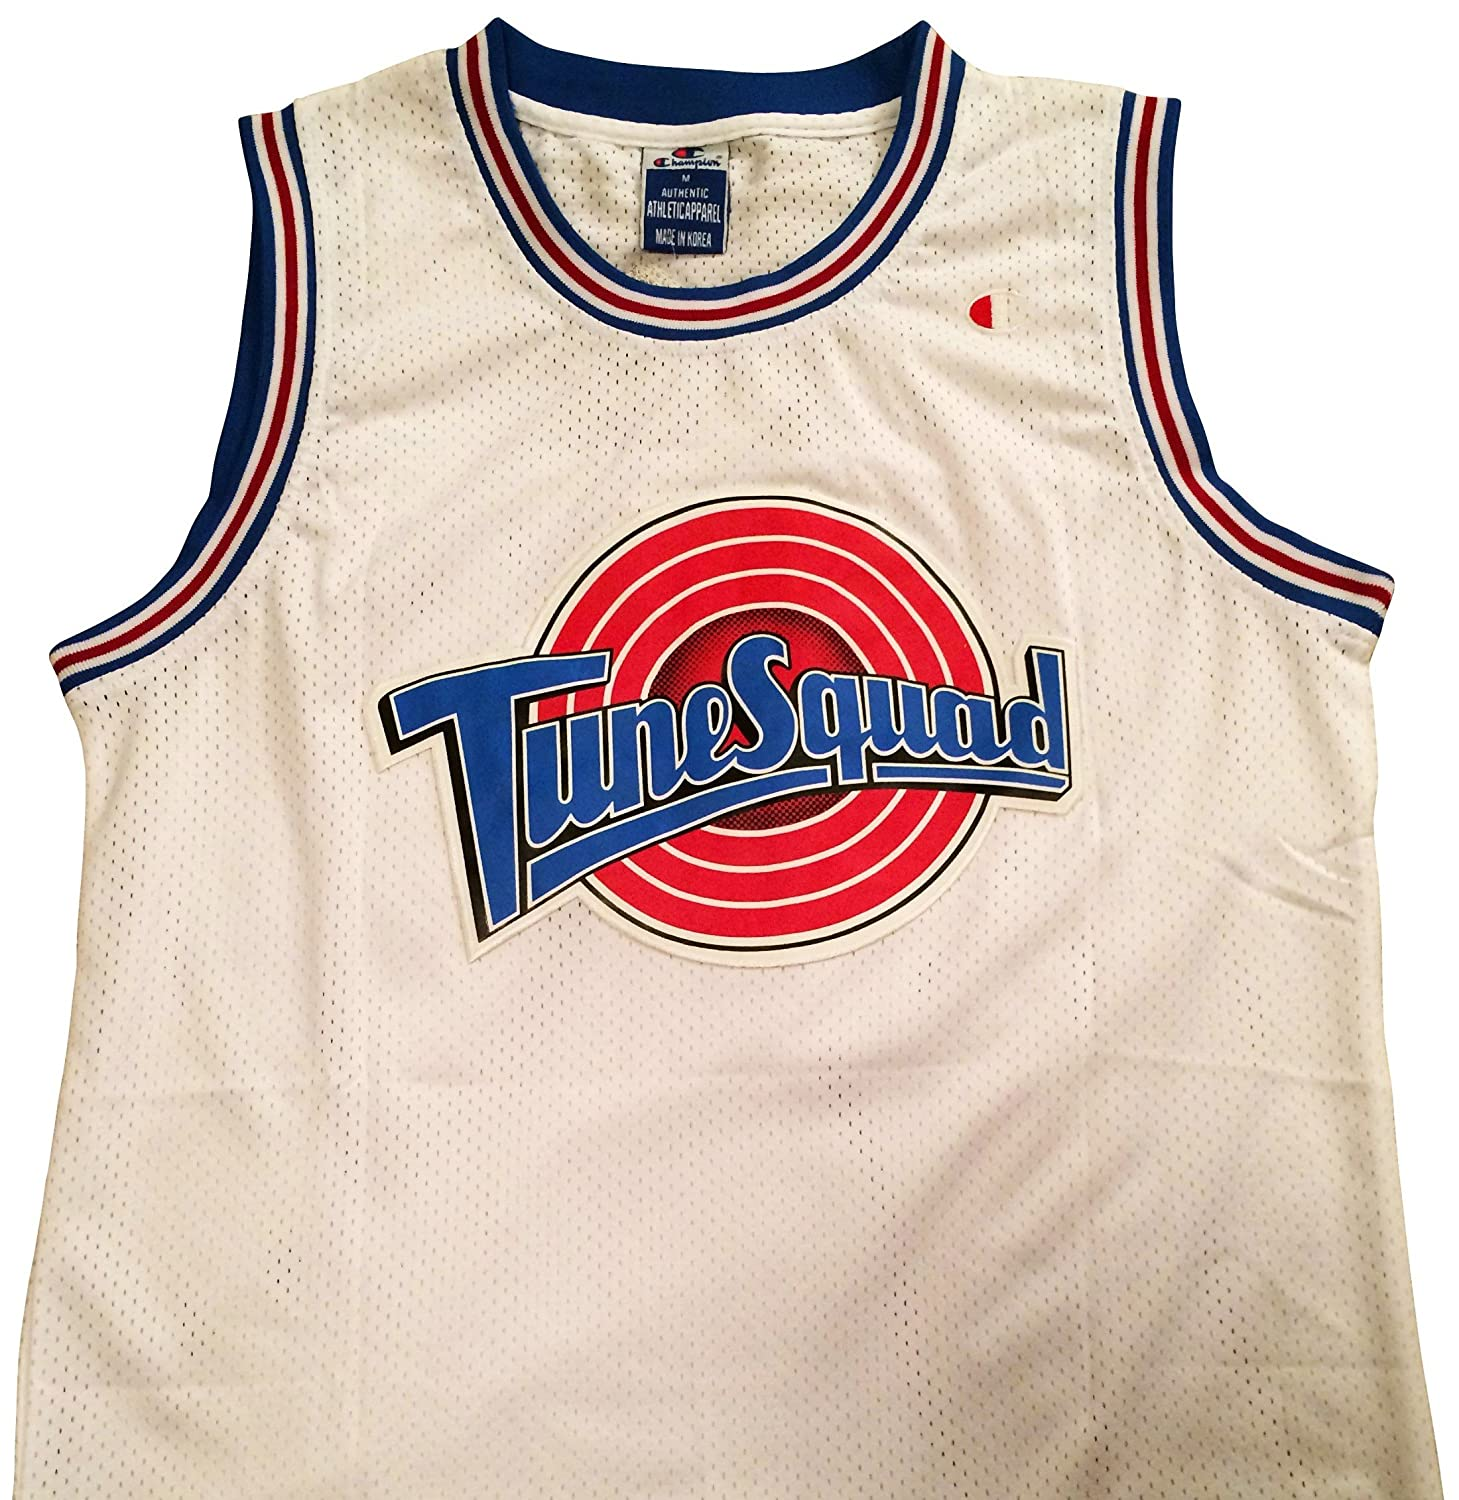 Amazon.com : Bill Murray Space Jam Jersey - #22 Tune Squad - White (Large) : Sports & Outdoors